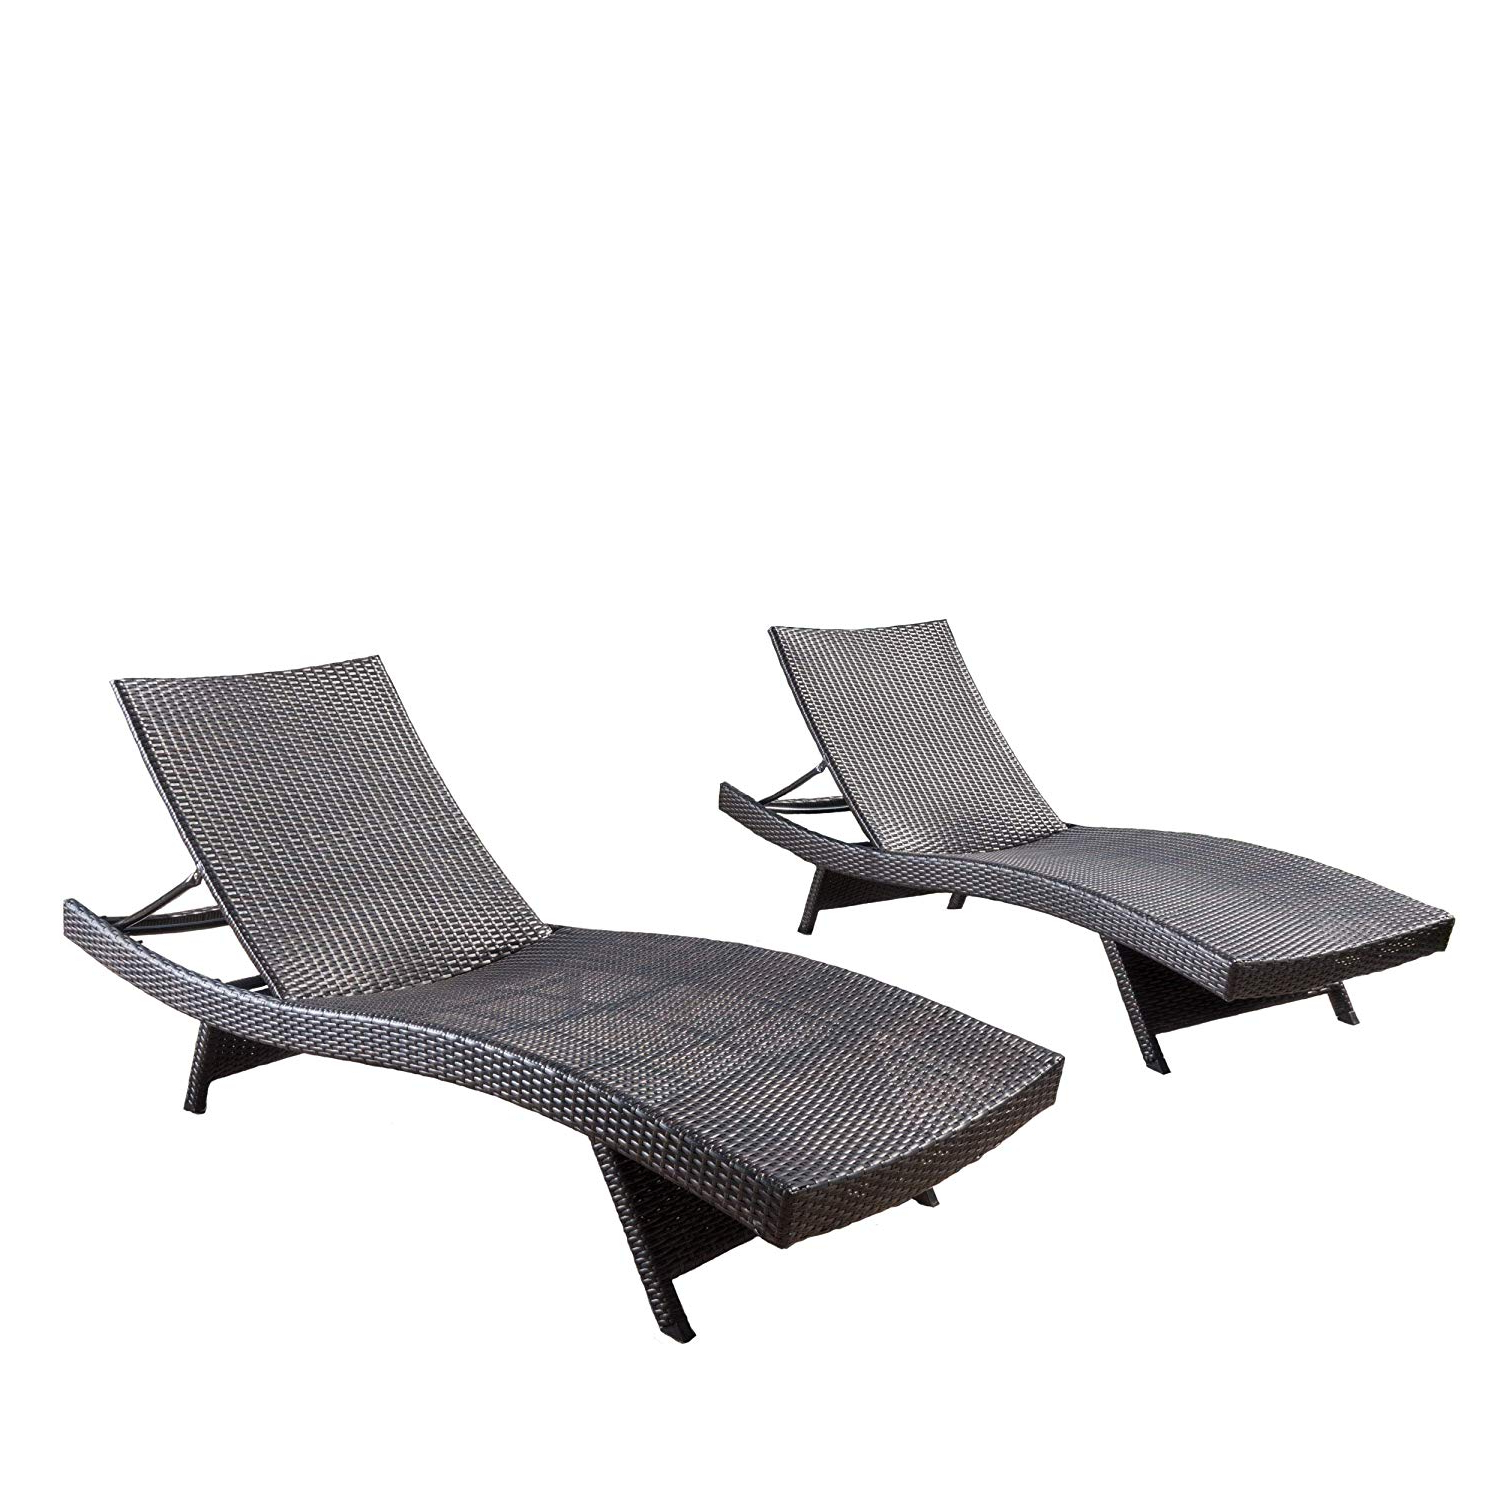 Cosco Outdoor Aluminum Chaise Lounge Chairs In Widely Used Chaise Sika Camping Cushions Olivia Folding Sun Home Side (View 13 of 25)